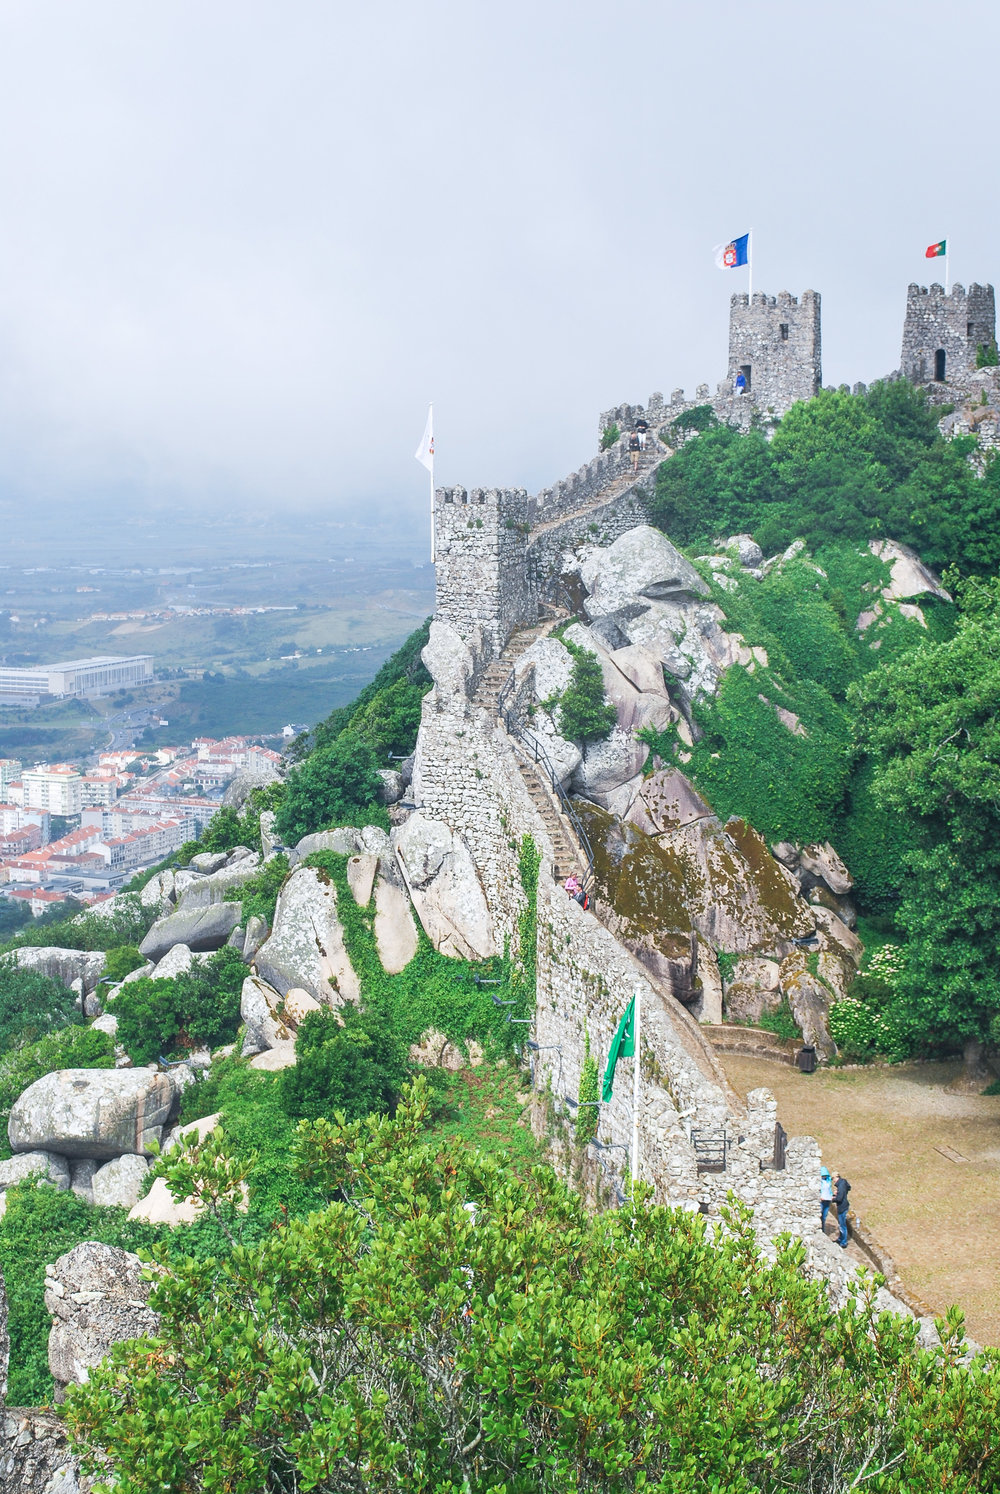 Castelo dos Mouros / Castle of the Moors — Visiting Lisbon, Portugal? A Sintra day trip is a must! Read this guide on how to get to Sintra and what to do when you're there.